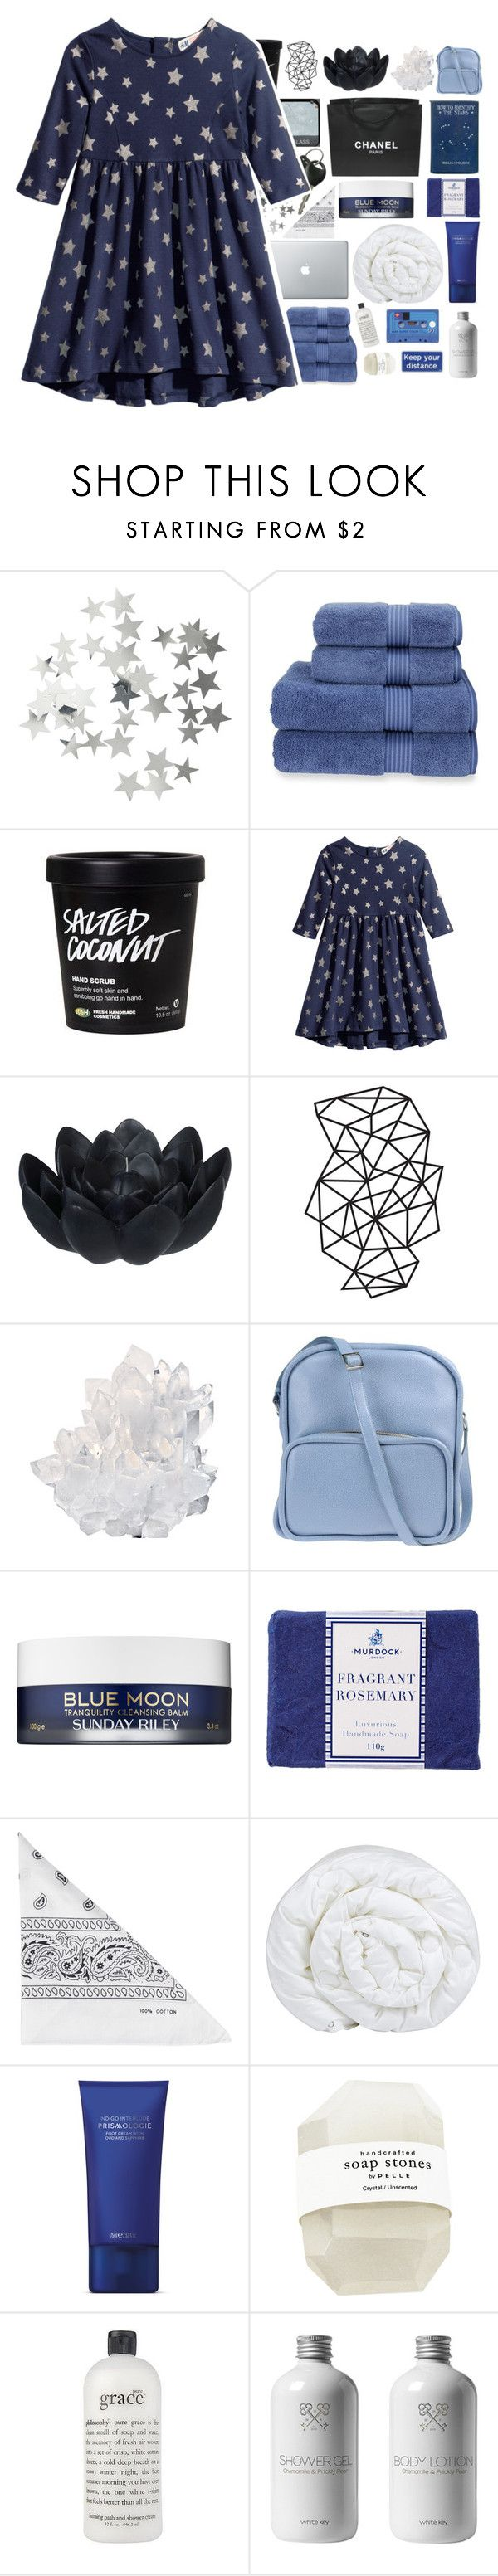 """""""☾guys my age don't know how to treat me"""" by child-of-the-galaxy ❤ liked on Polyvore featuring H&M, Christy, Sia, Chanel, WALL, McCoy Design, Jil Sander Navy, Sunday Riley, Murdock London and NLY Accessories"""